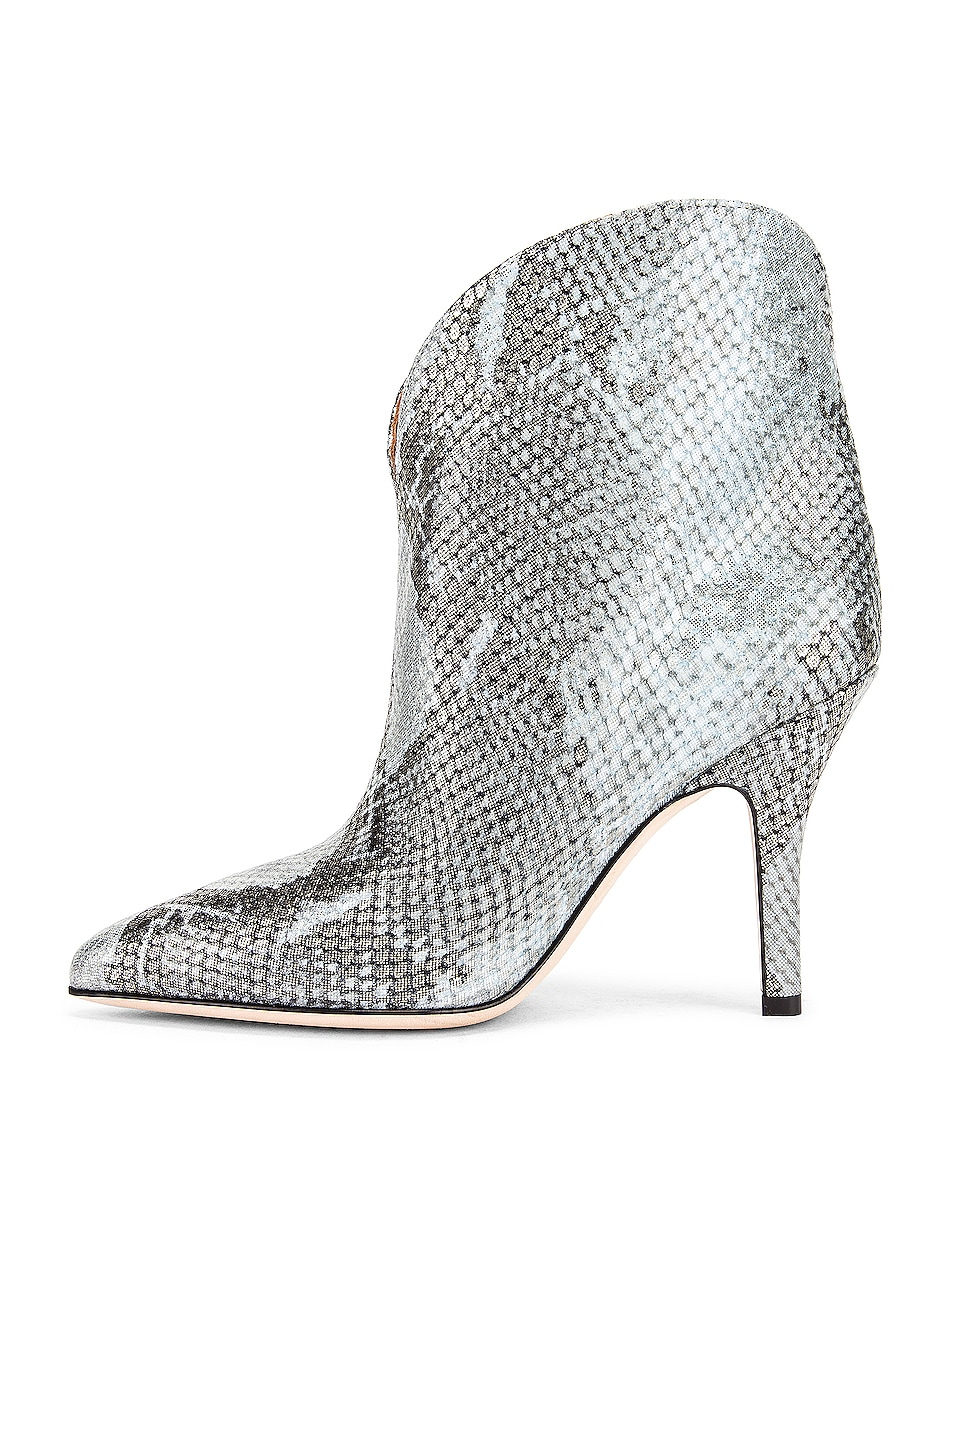 Image 5 of Paris Texas Python Lame Print Rounded Print Stiletto Ankle Boot in Light Blue